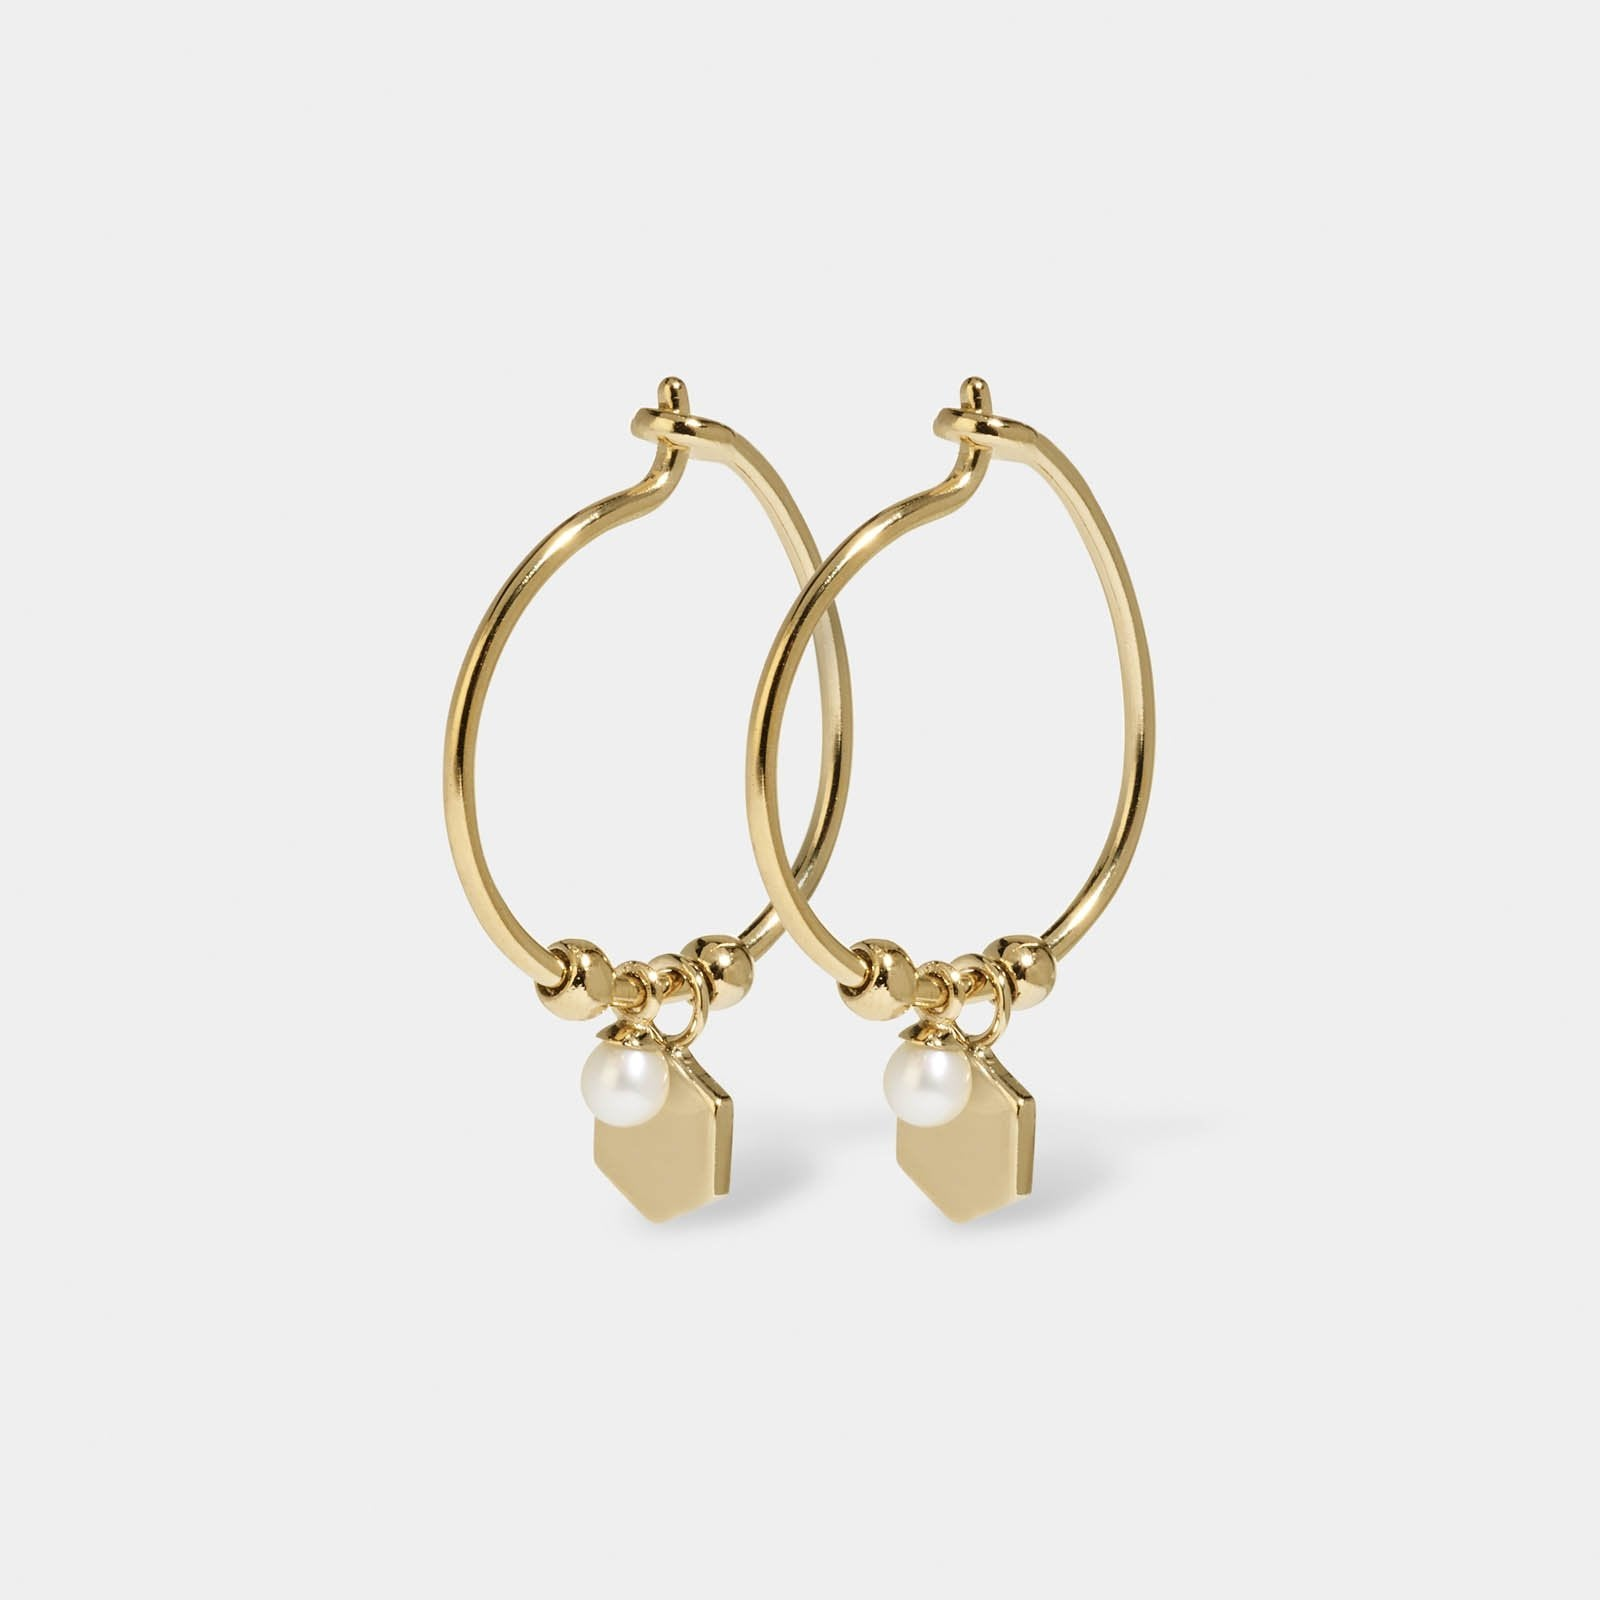 CLUSE Essentielle Gold Hexagon and Pearl Charm Hoop Earrings CLJ51002 - earrings